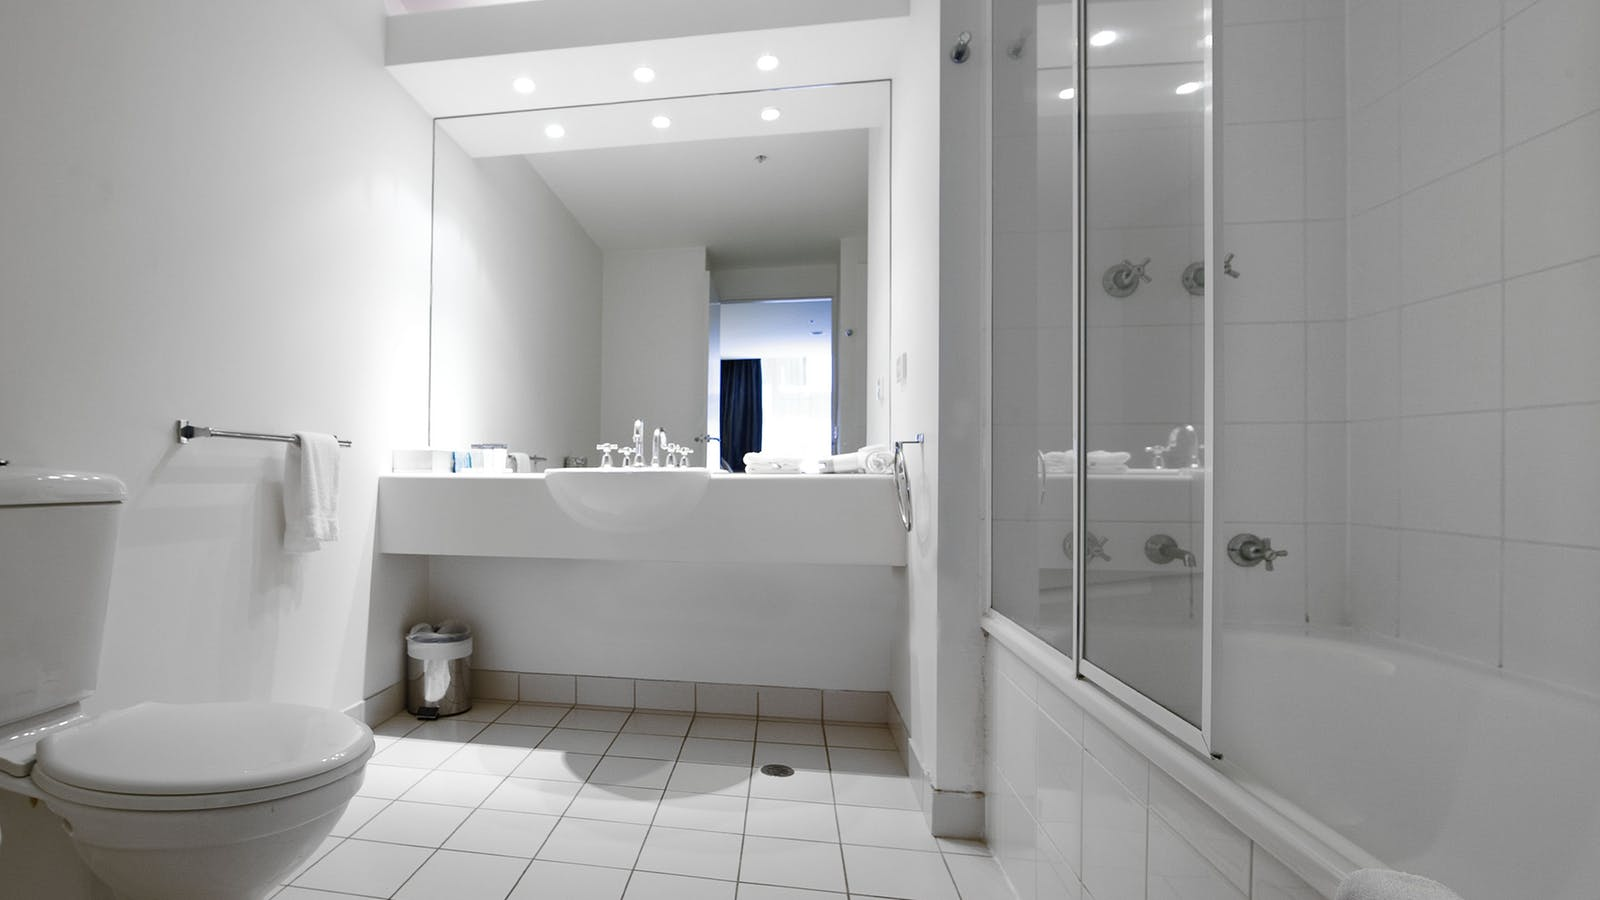 Bathroom of a Studio Stuite and 1 Bedroom apartment